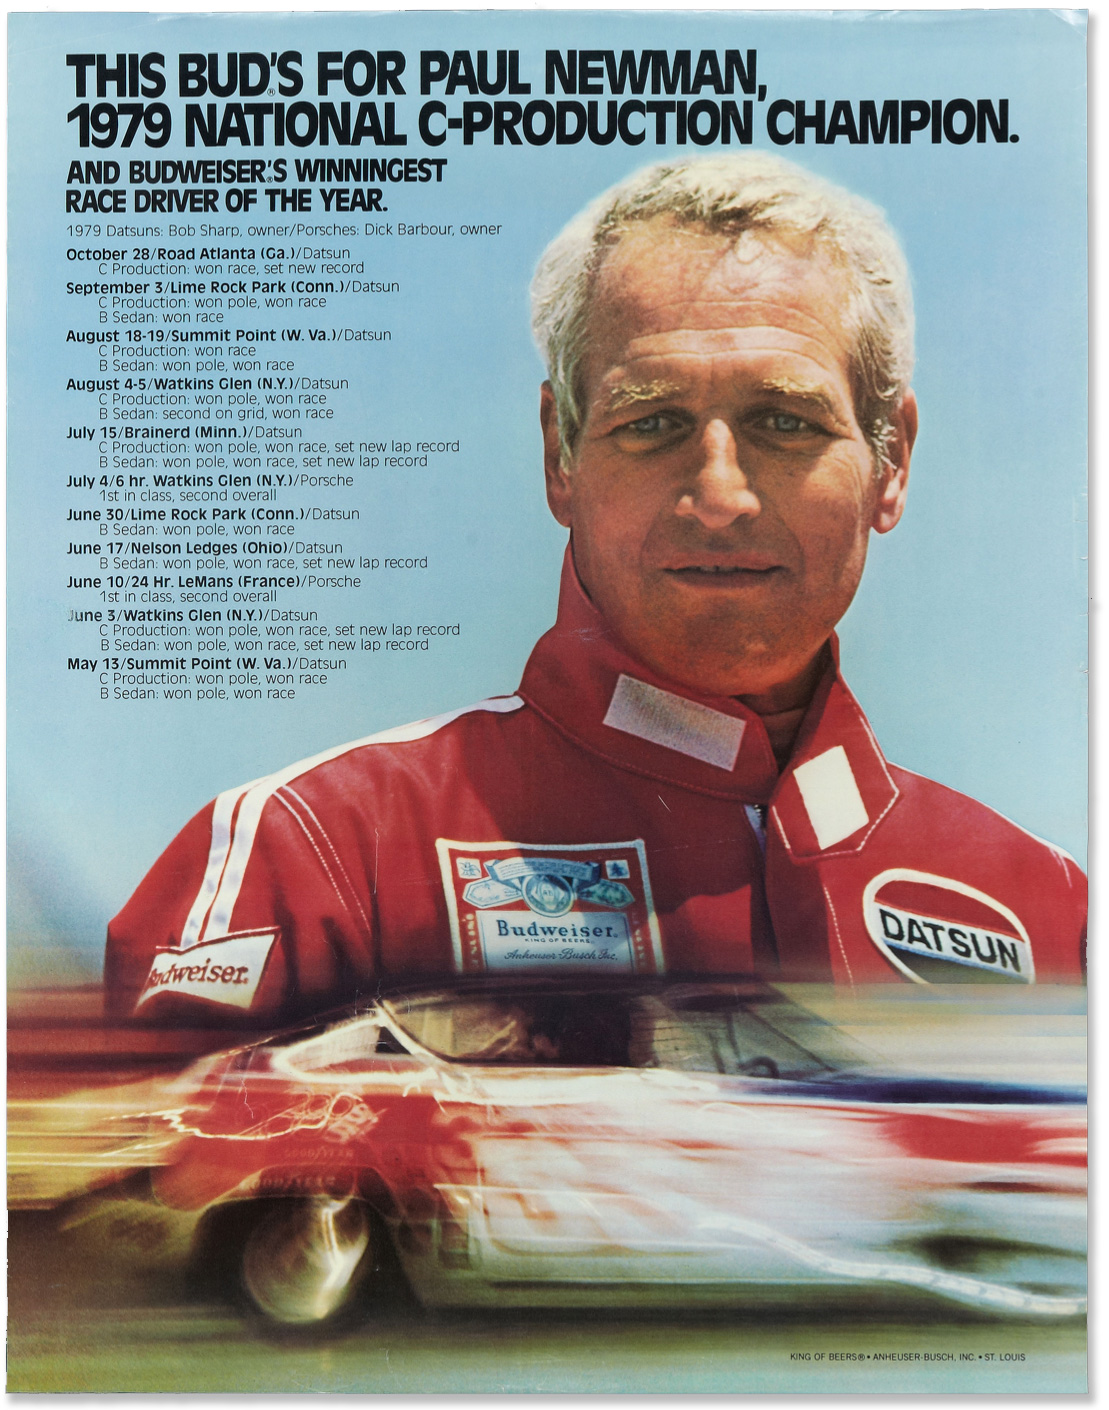 Paul Newman Budweiser Racing Poster Megadeluxe For The